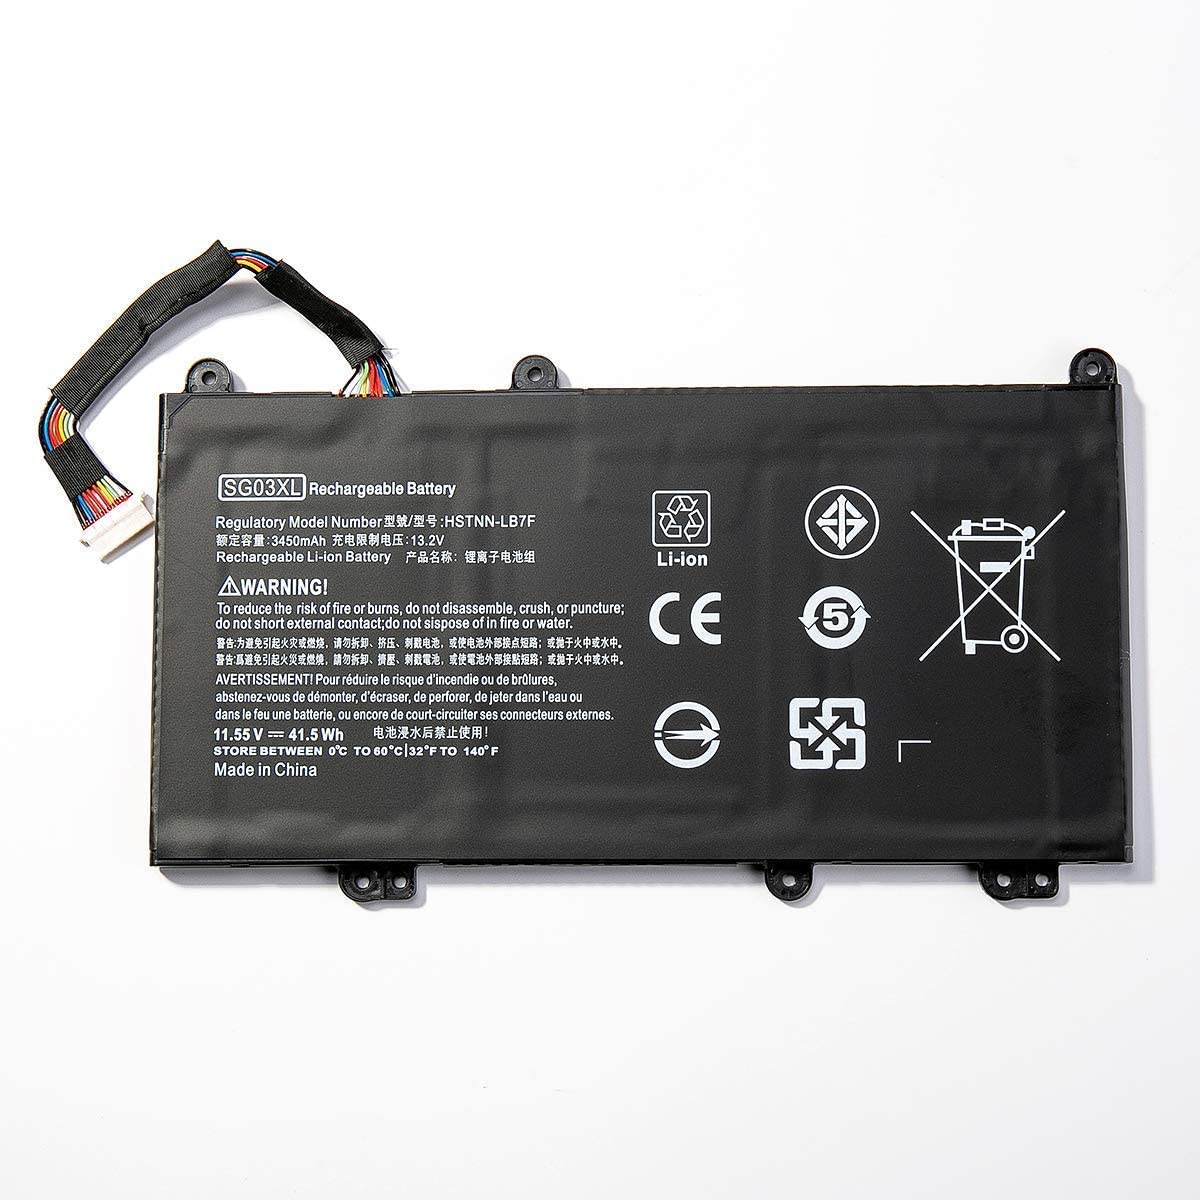 Binger New SG03XL Replacement Laptop Battery Compatible with HP Envy M7-U M7-U009DX 17-U011NR 17t-U000 Series Notebook 849315-850 TPN-I126 849049-421 HSTNN-LB7F HSTNN-LB7E SG03061XL (11.55V 41.5)